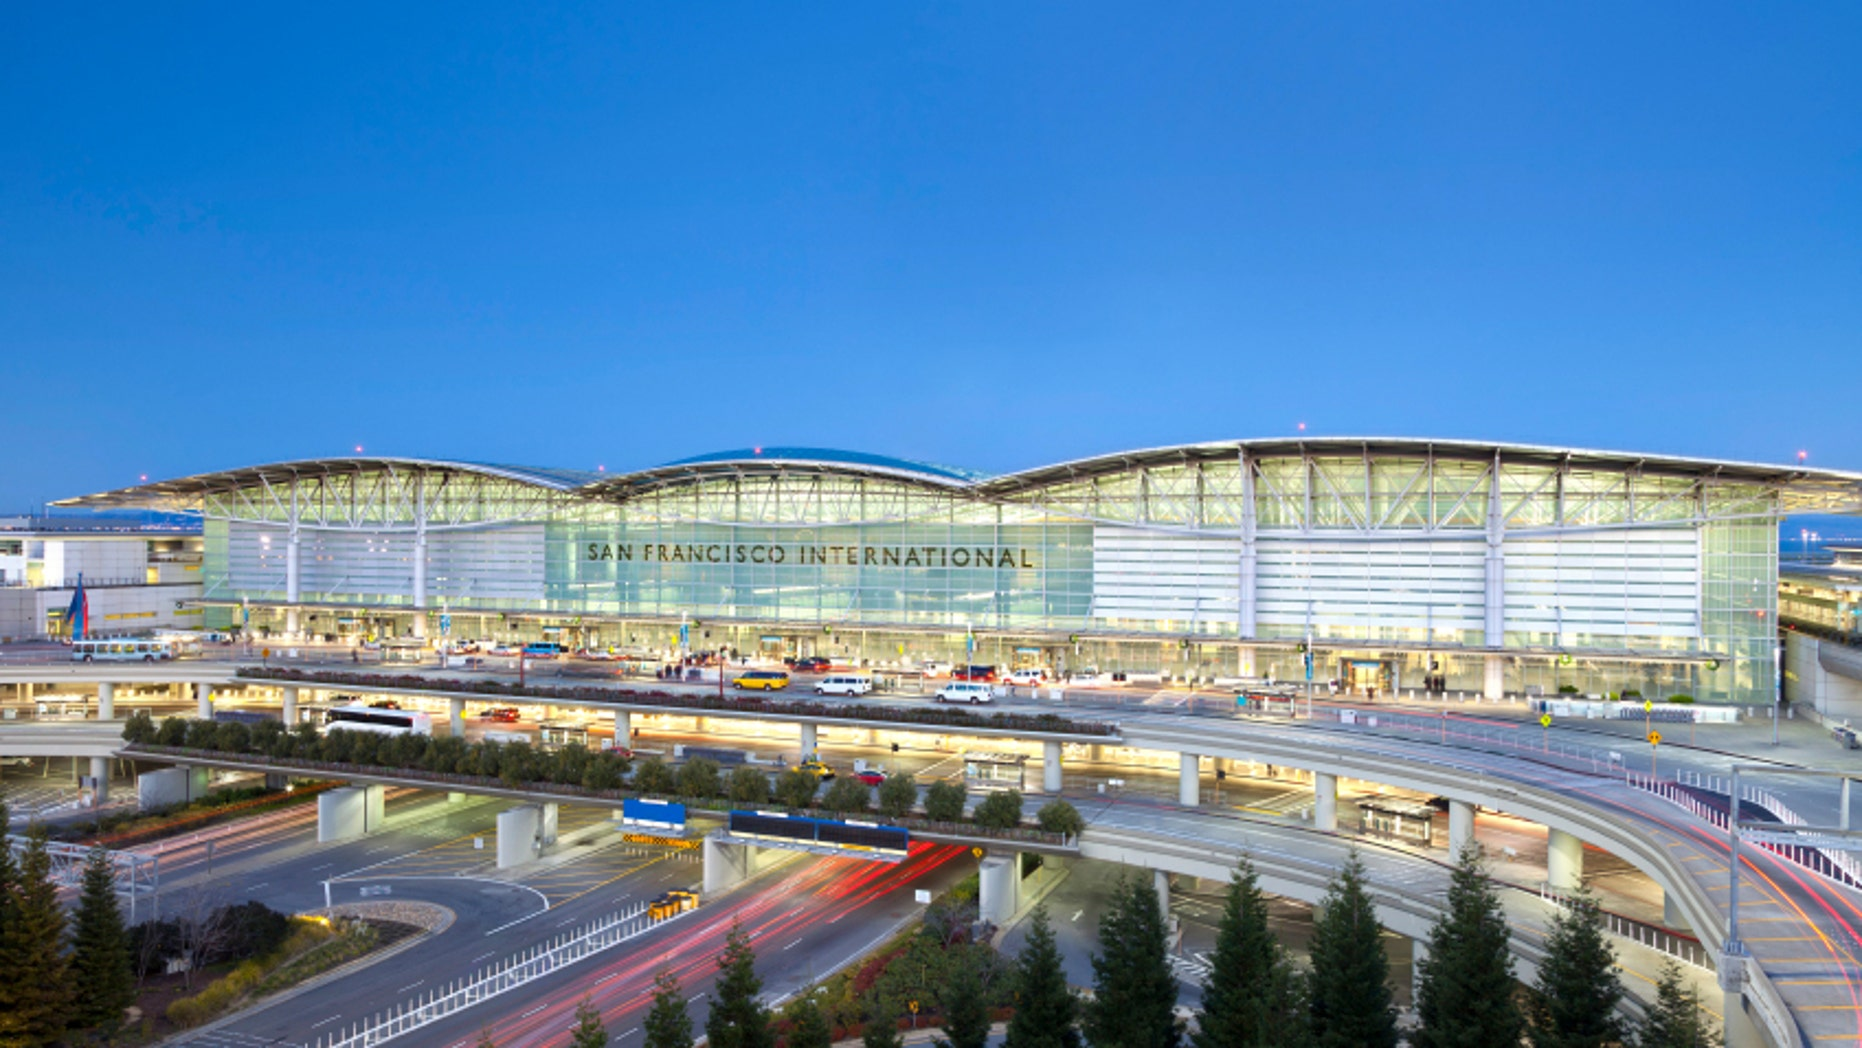 San Francisco International airport received top marks for food choices and overall airy feel.